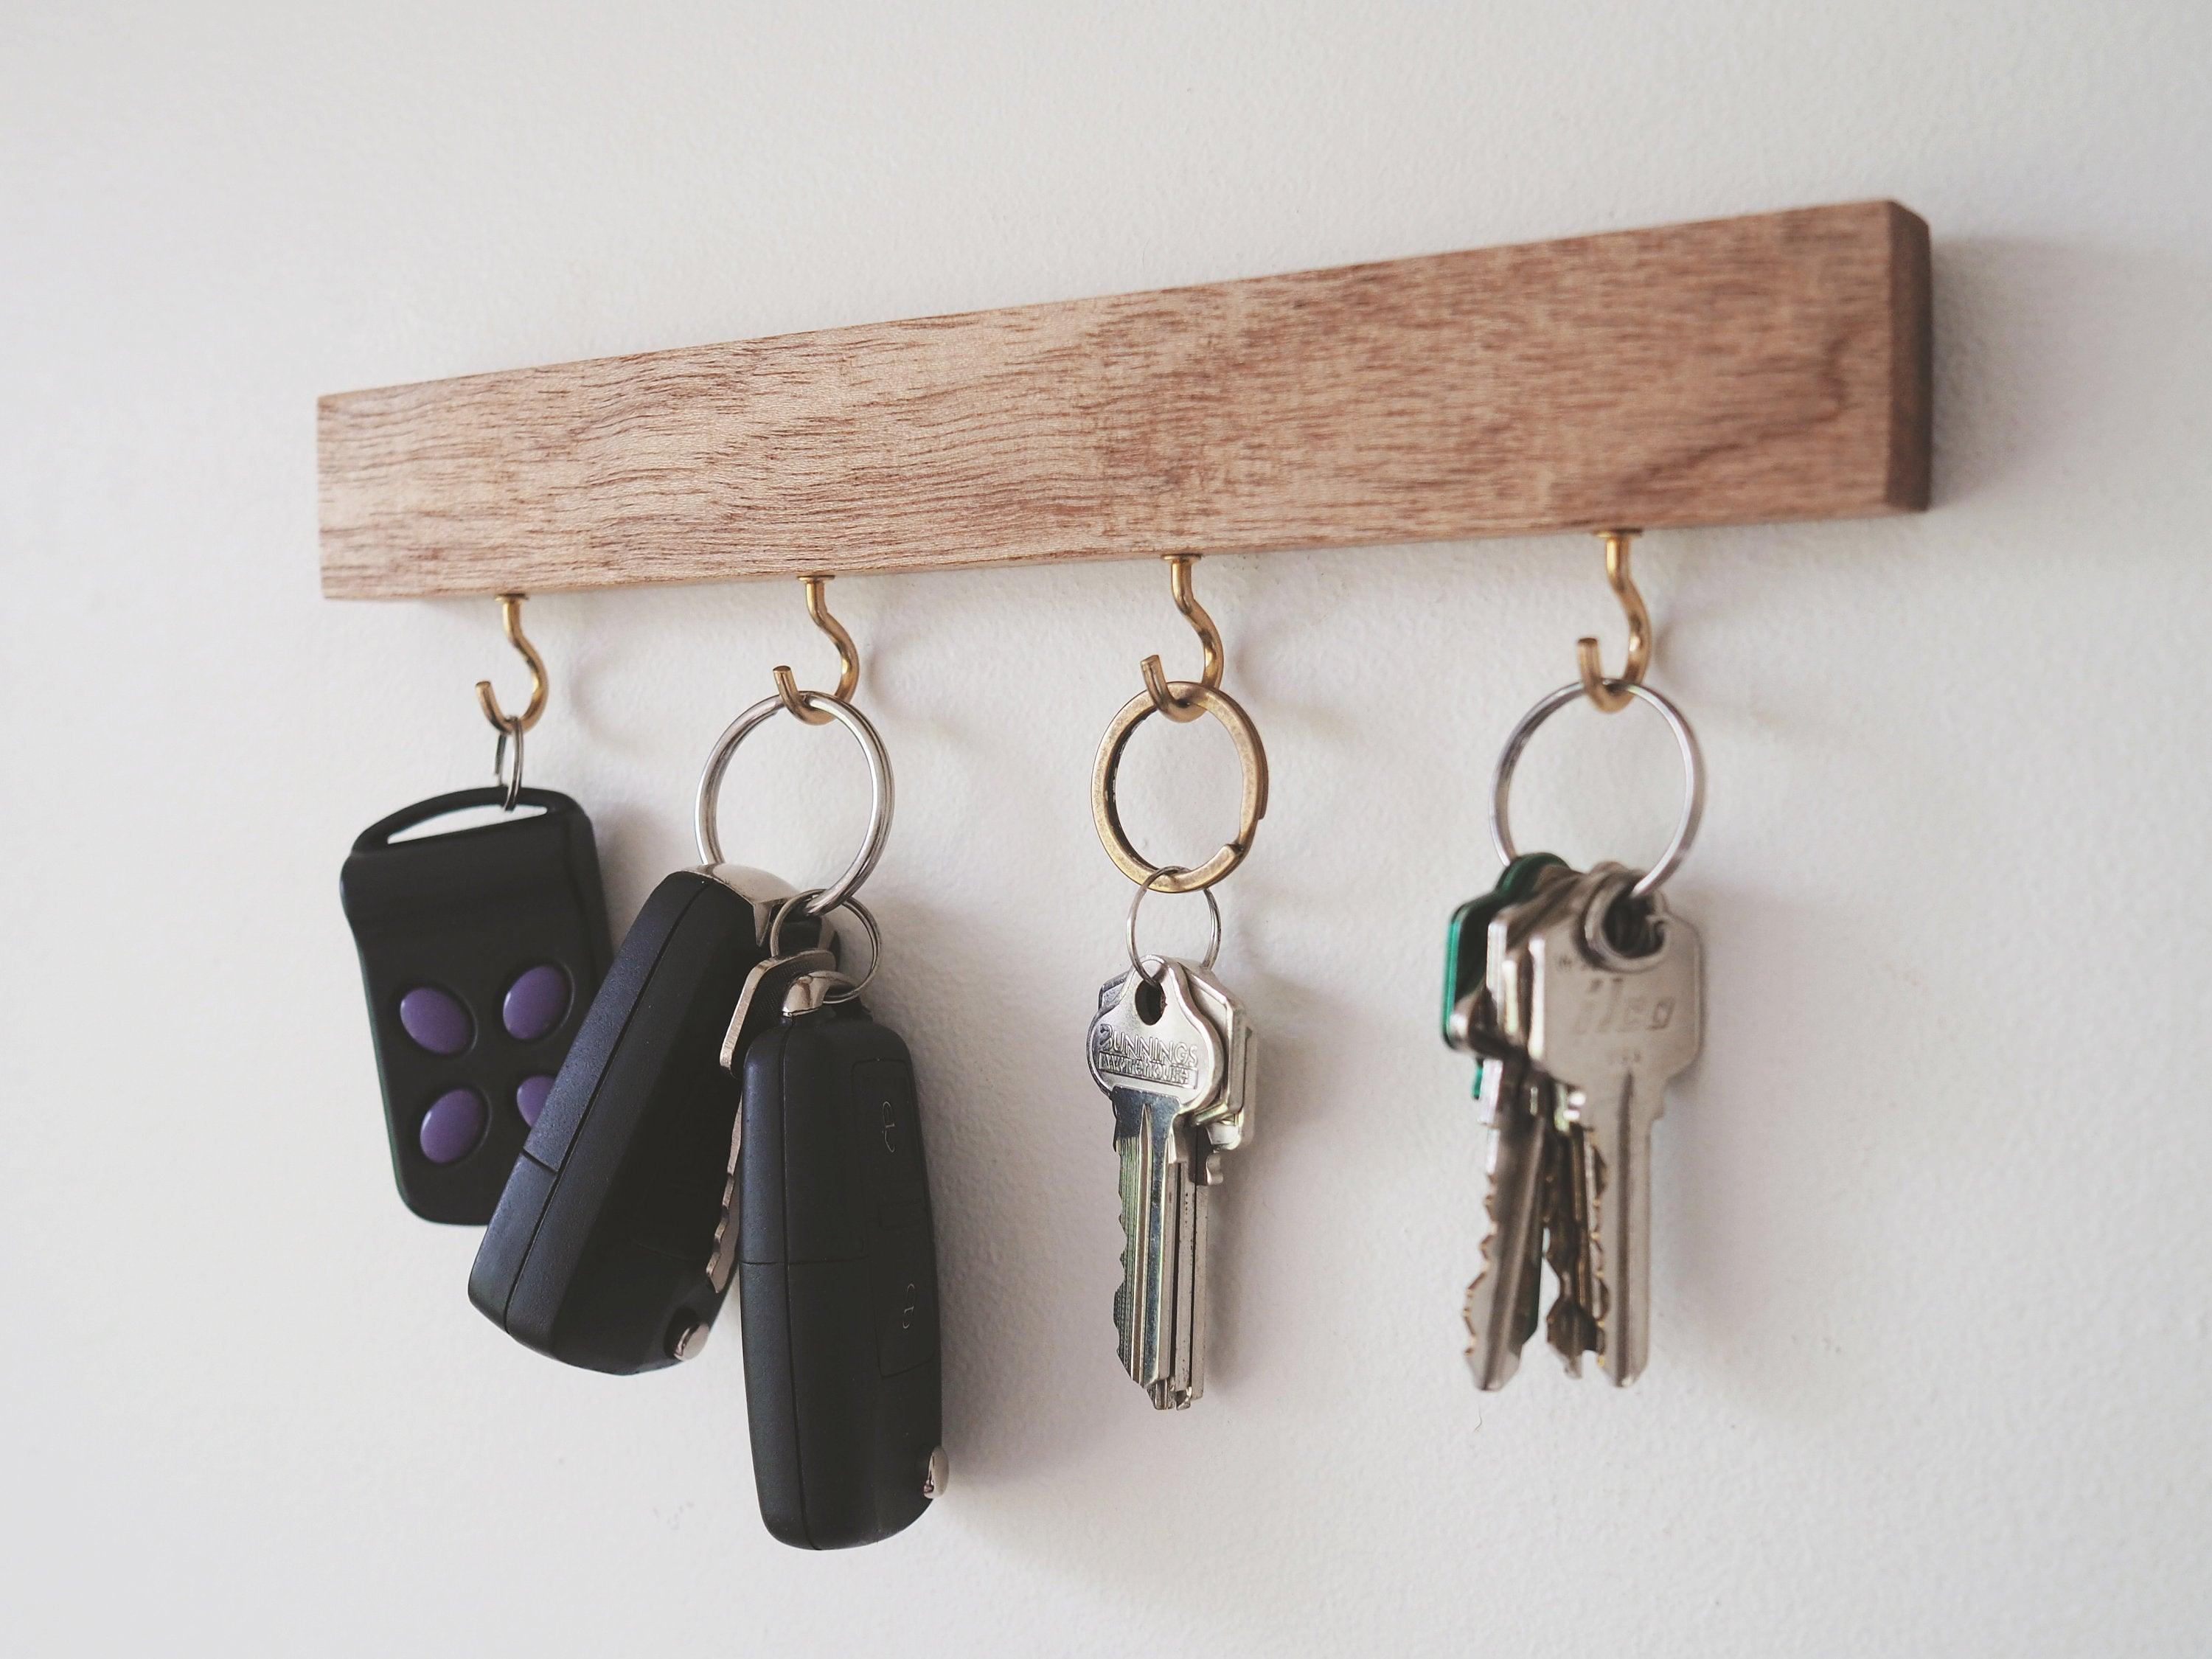 Hook Key Holder